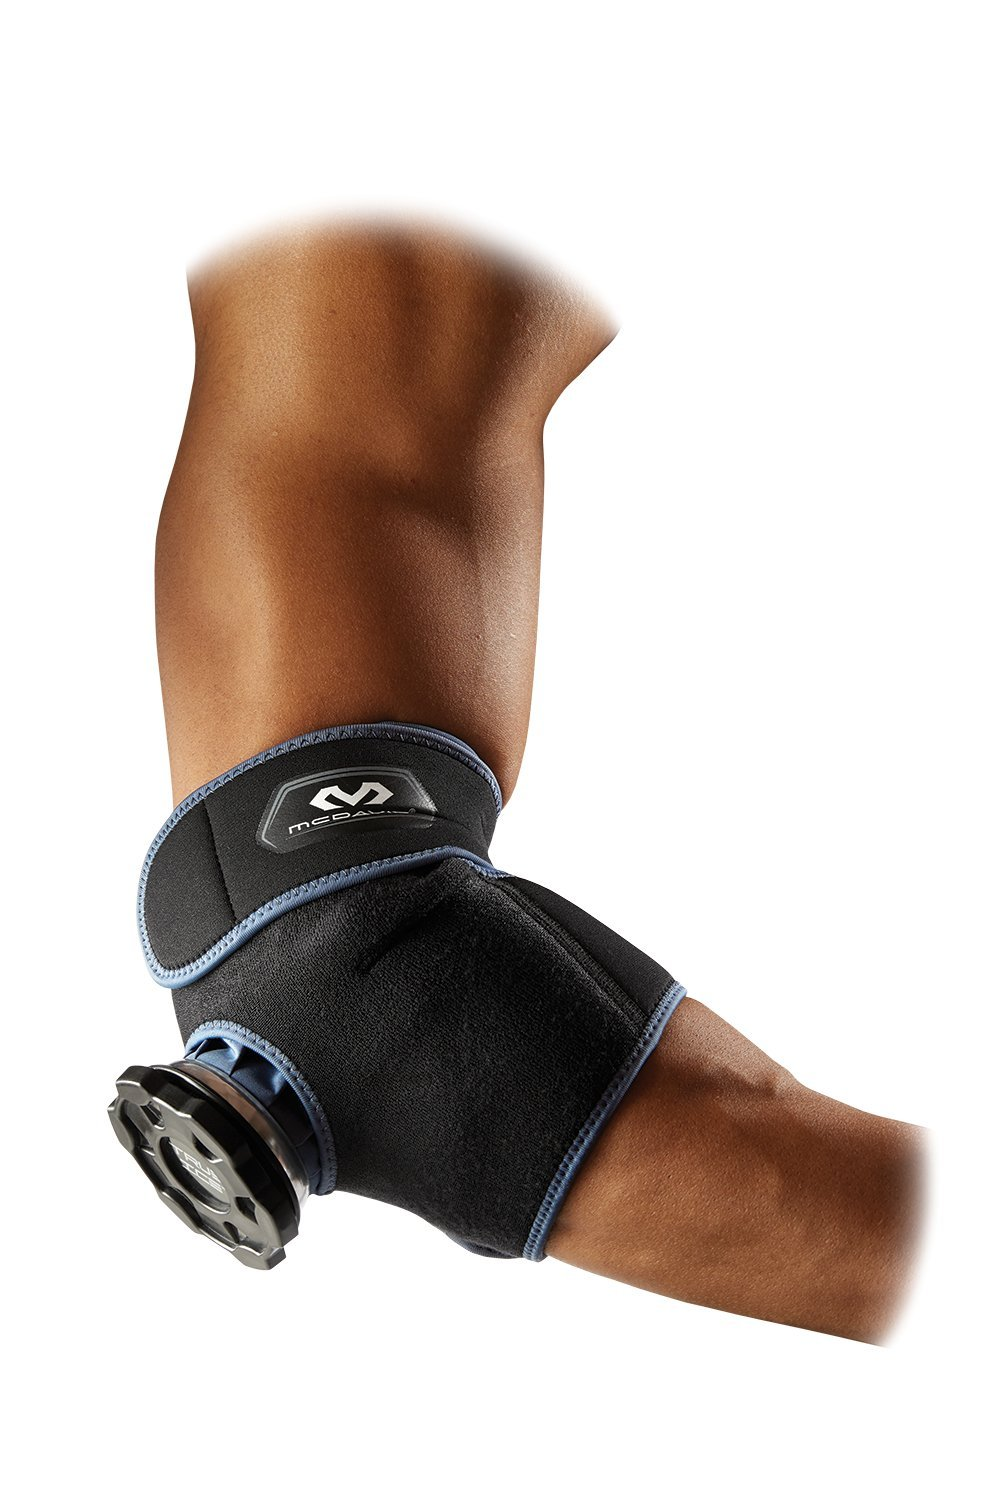 McDavid Elbow/Wrist Ice Wrap, Ice with Compression for Elbow/Wrist w/Reusable Ice Pack, Cold Therapy for Sprains, Muscle Pain, Bruises & Inflammation